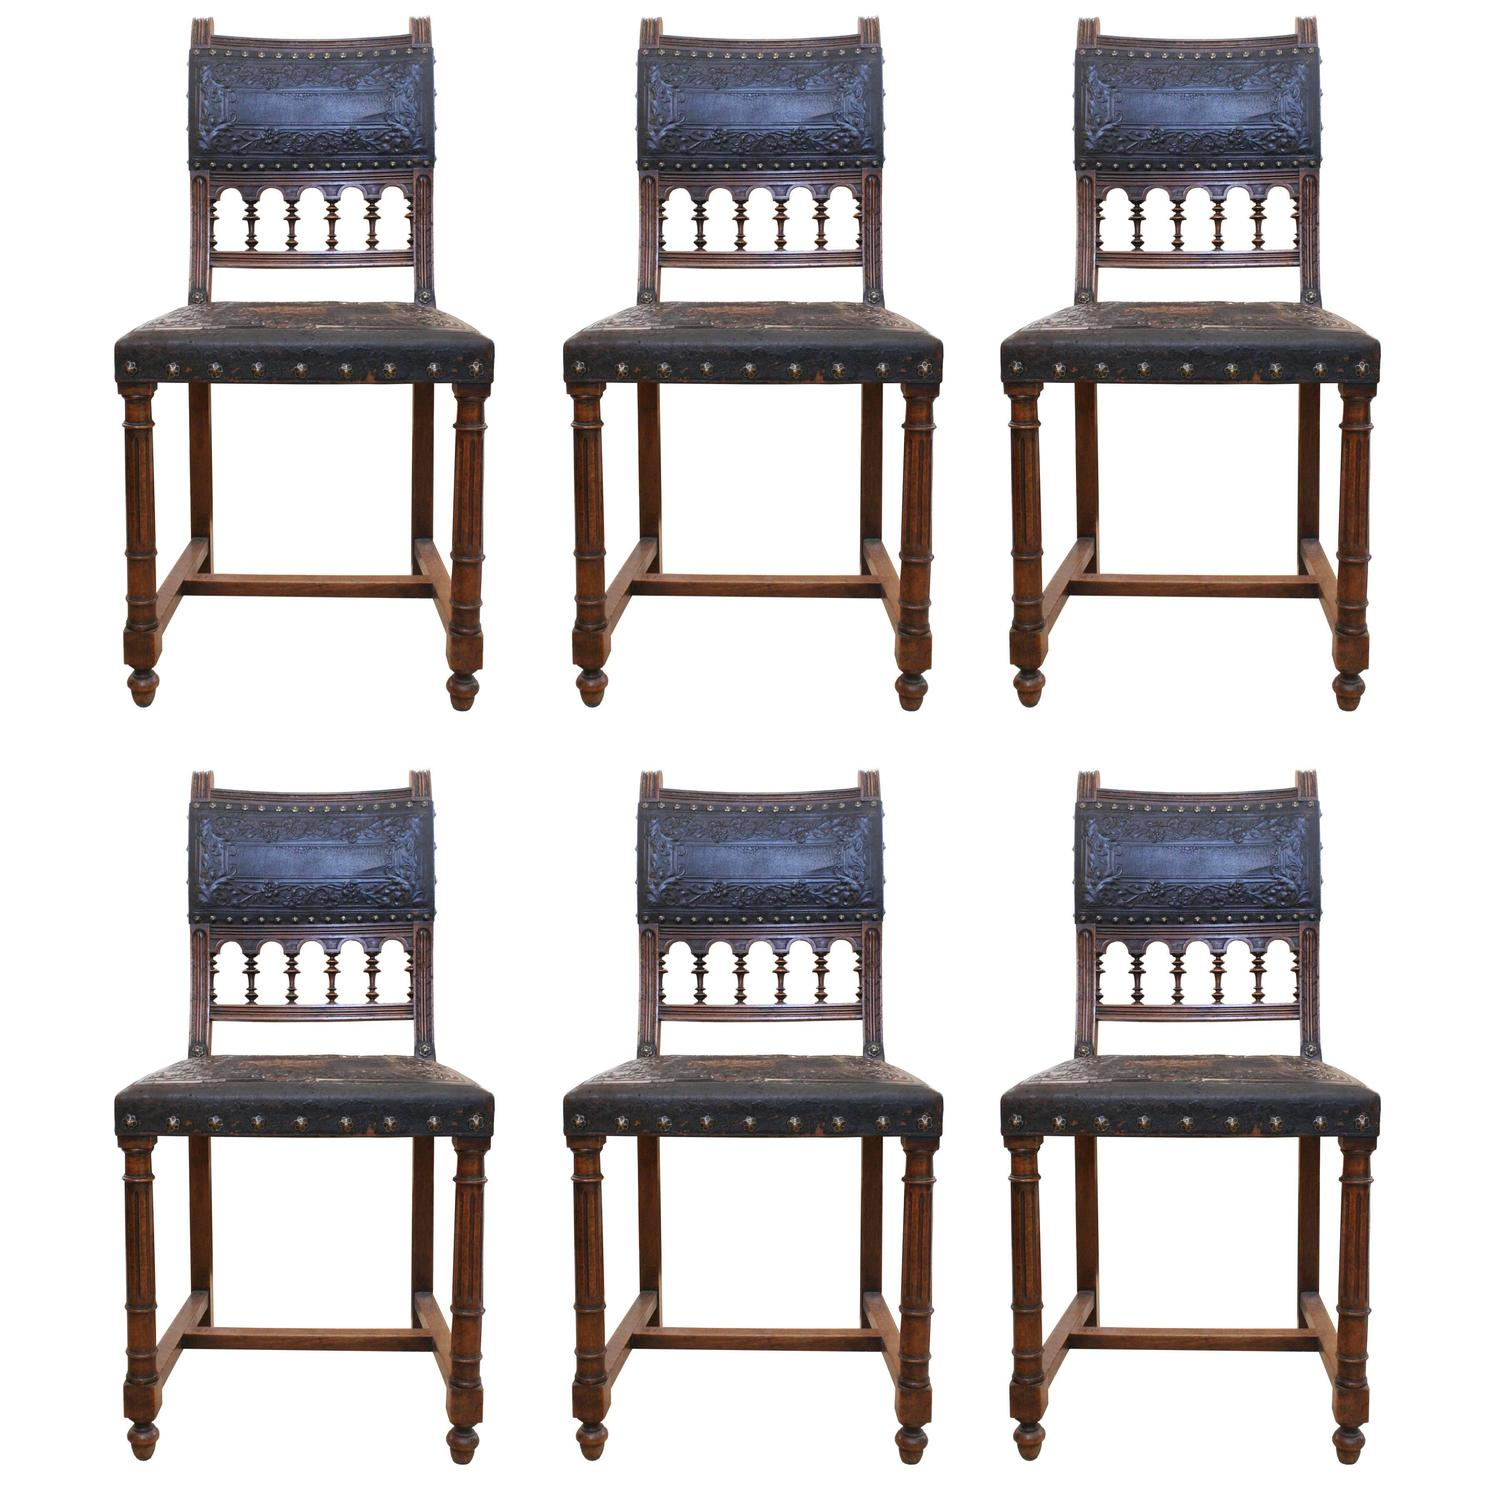 Colonial Dining Room Furniture: 19th Century Spanish Colonial Style Carved Wood And